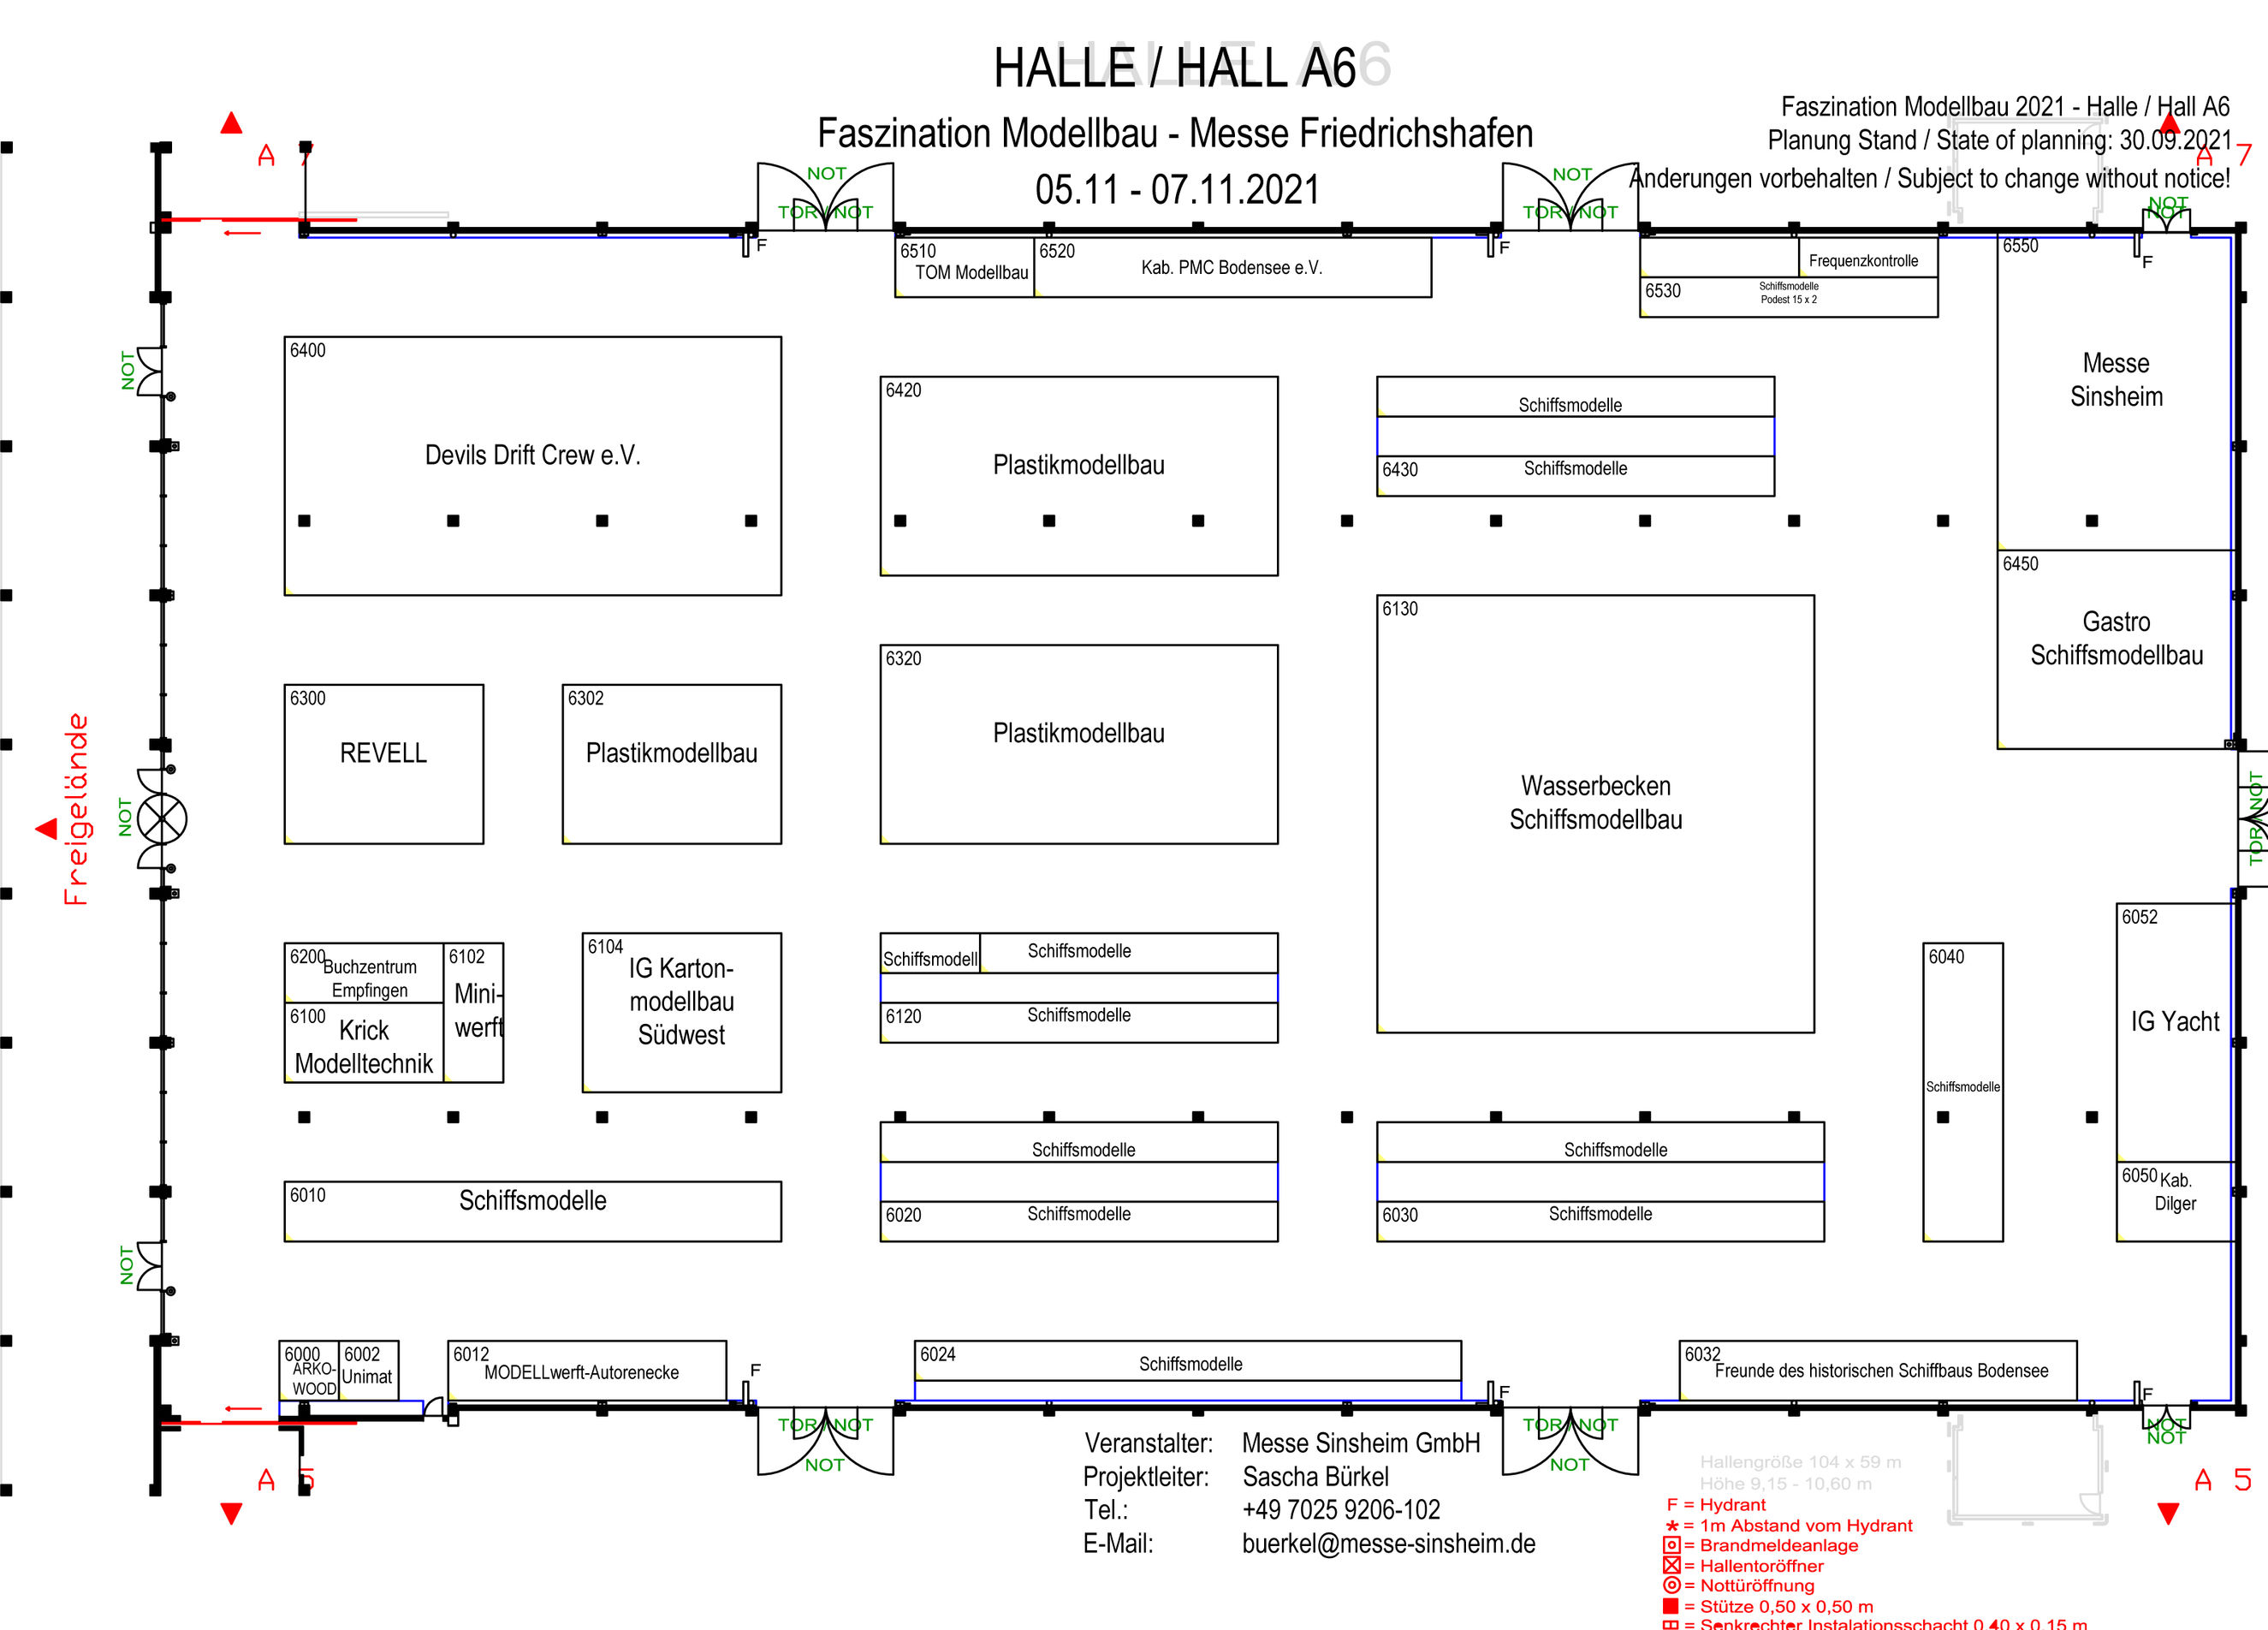 Halle A6